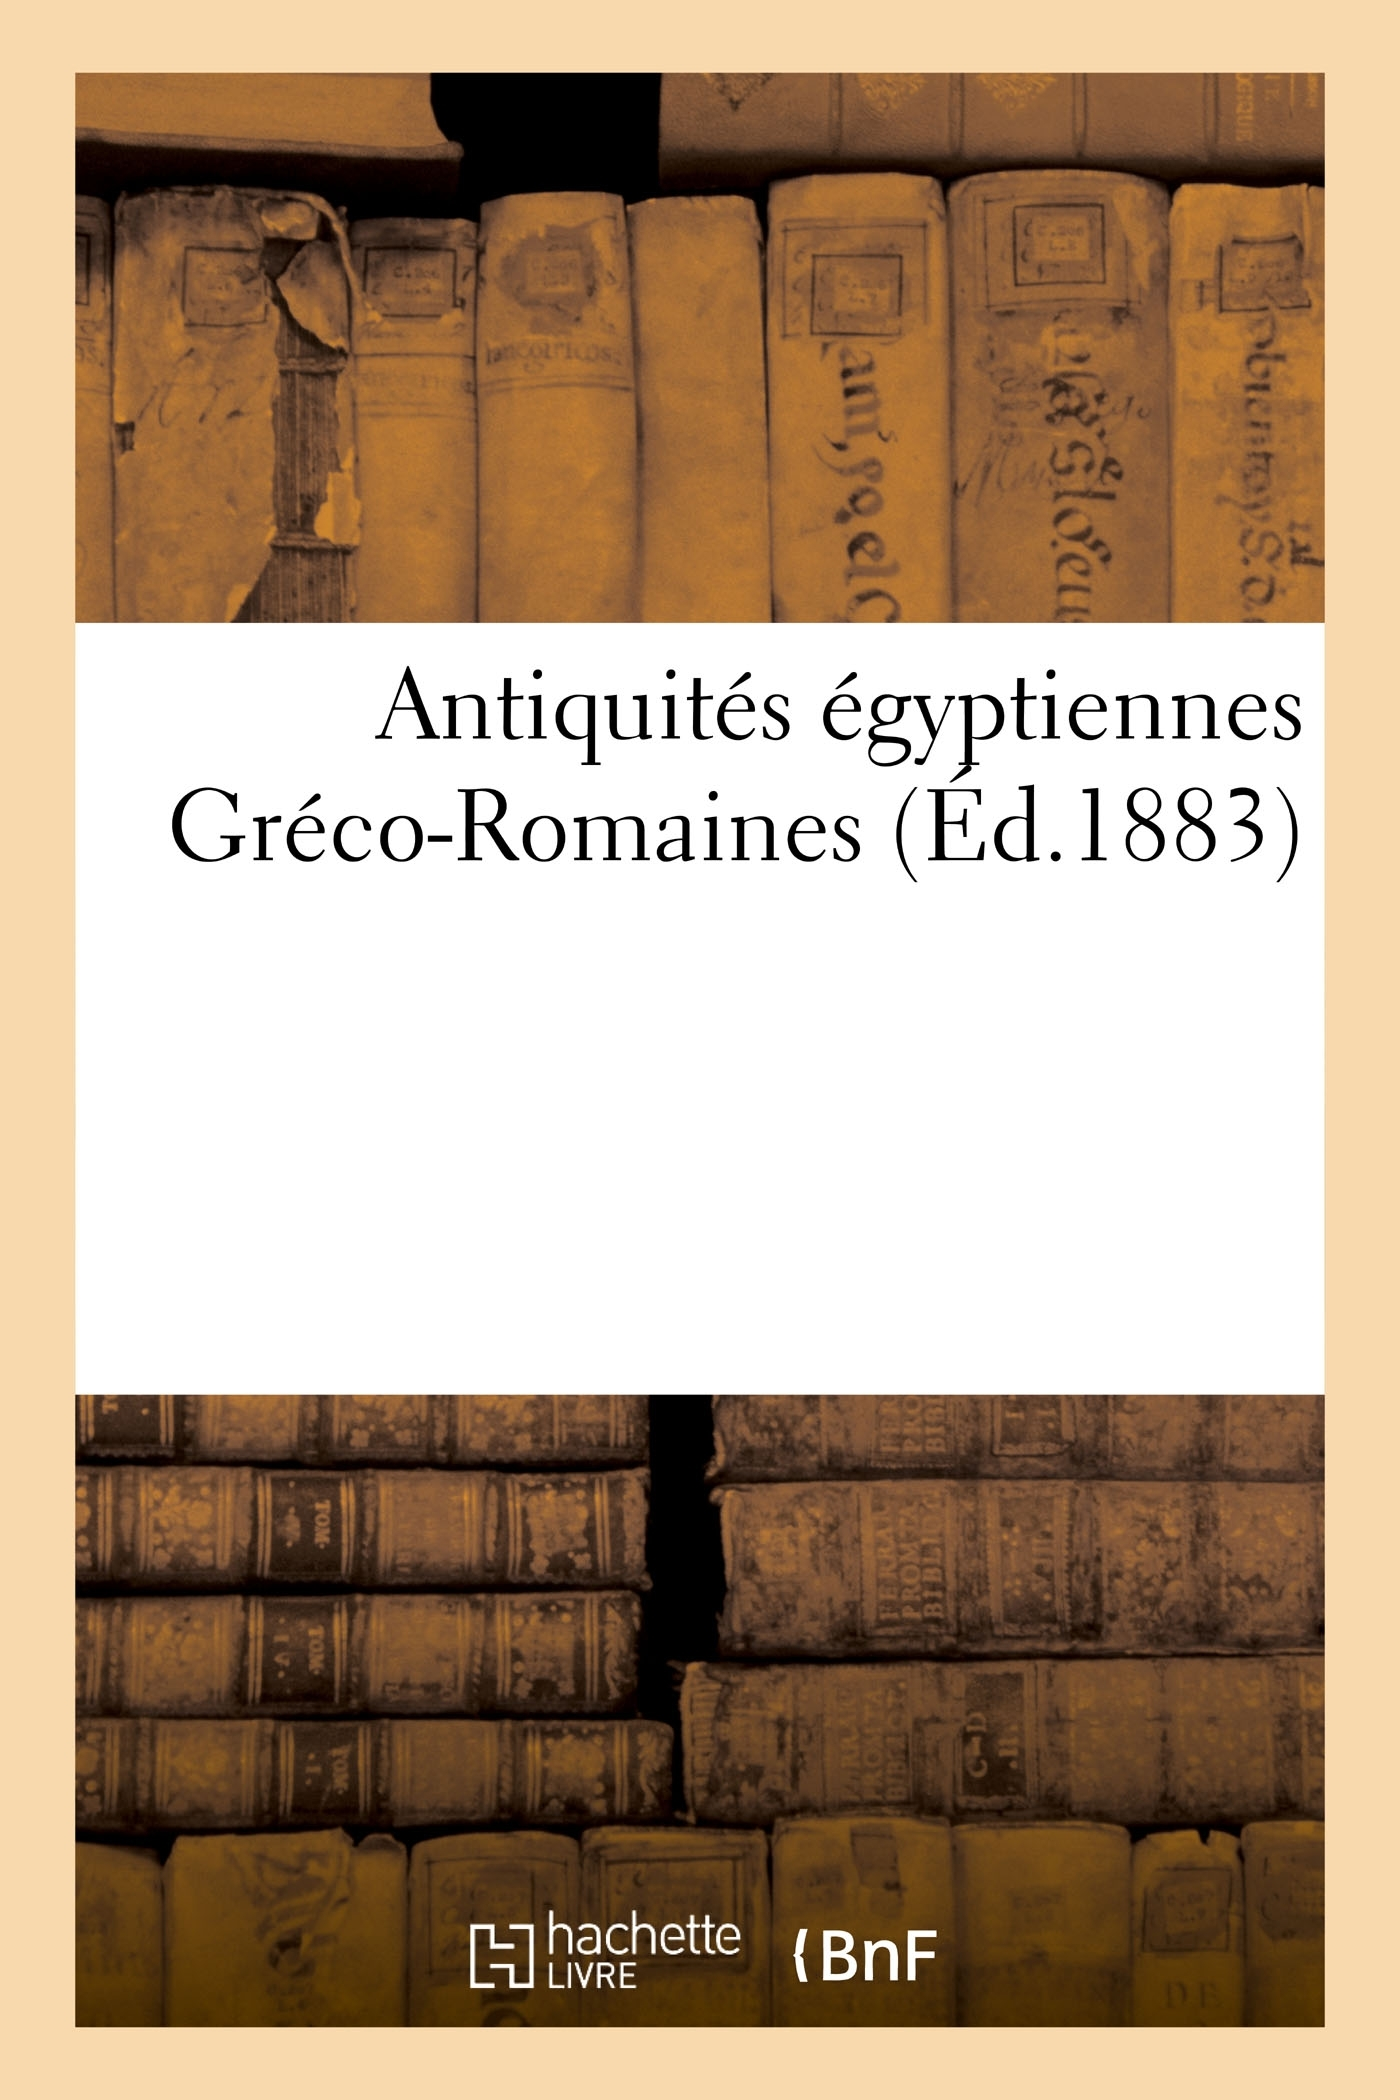 ANTIQUITES EGYPTIENNES GRECO-ROMAINES